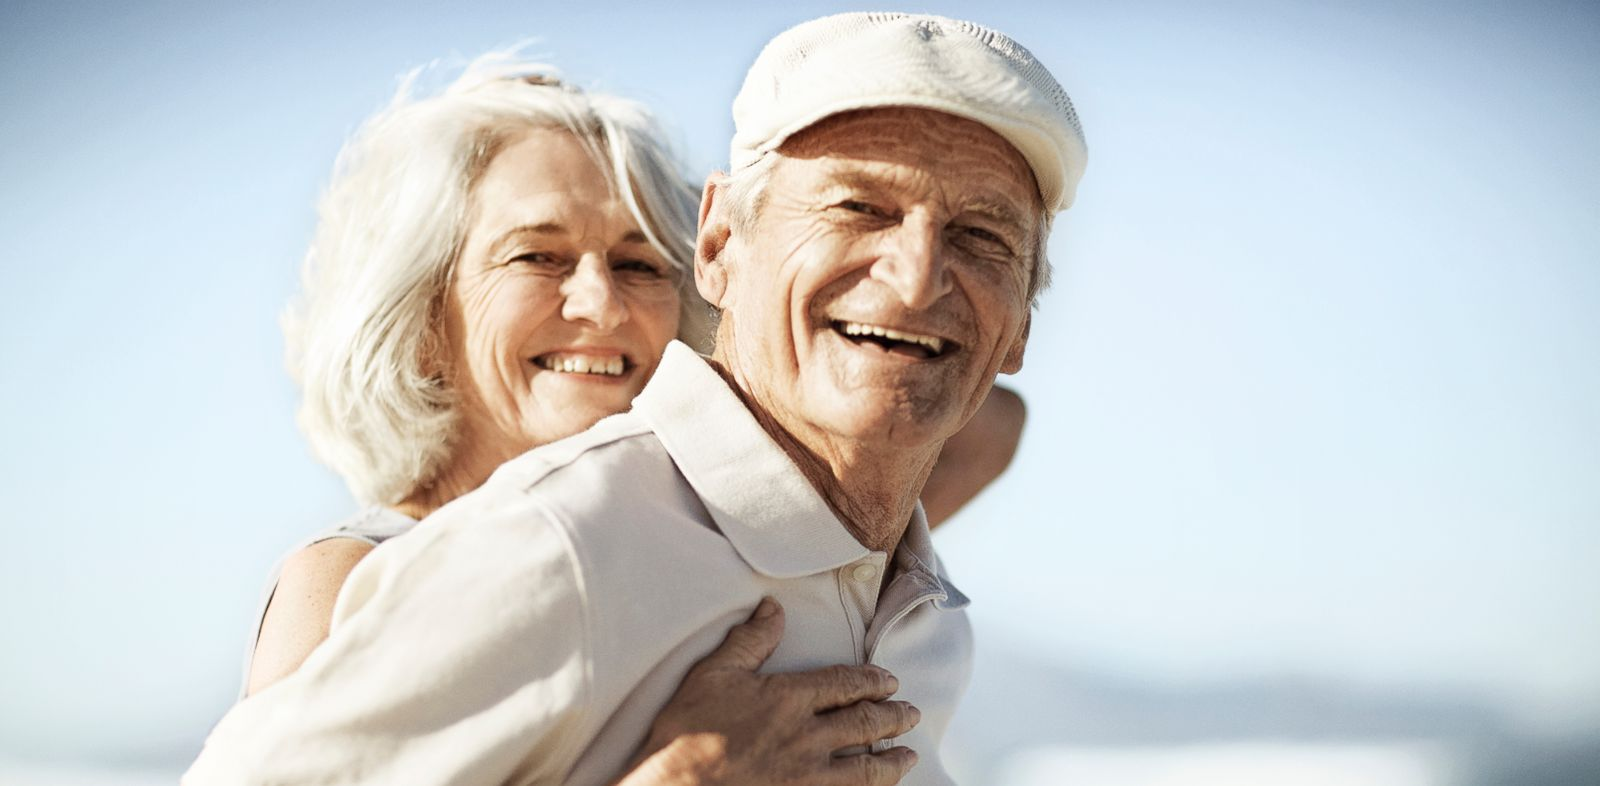 PHOTO: Scientists have made a startling discovery that organsisms can get healthier as they age.